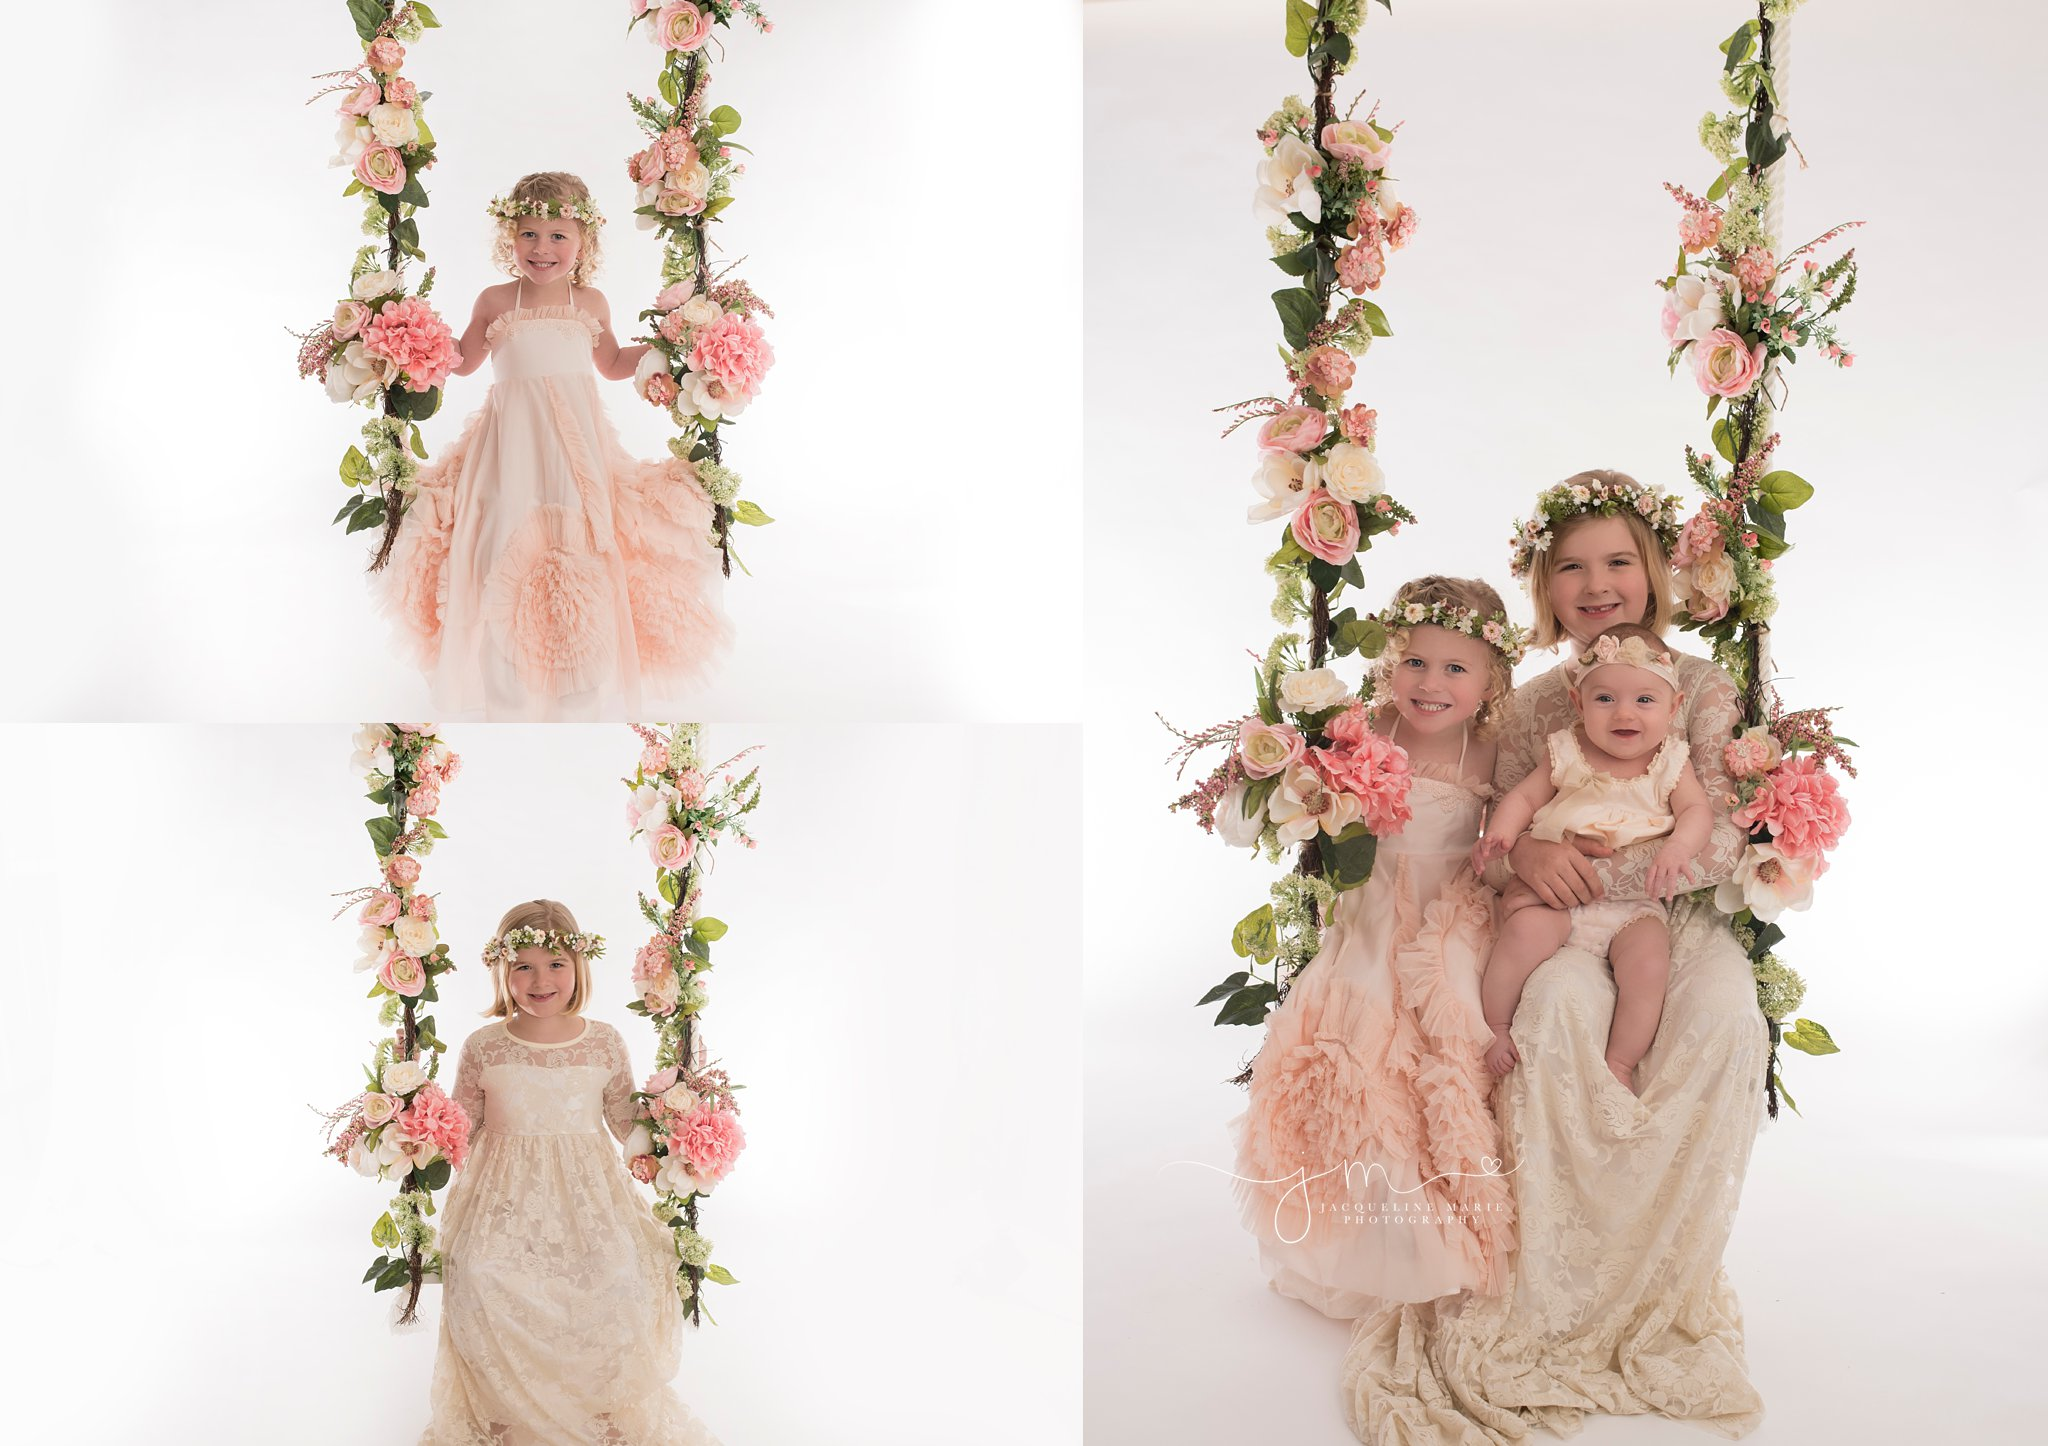 columbus ohio children photographer offers tree swing portraits wth pink flowers